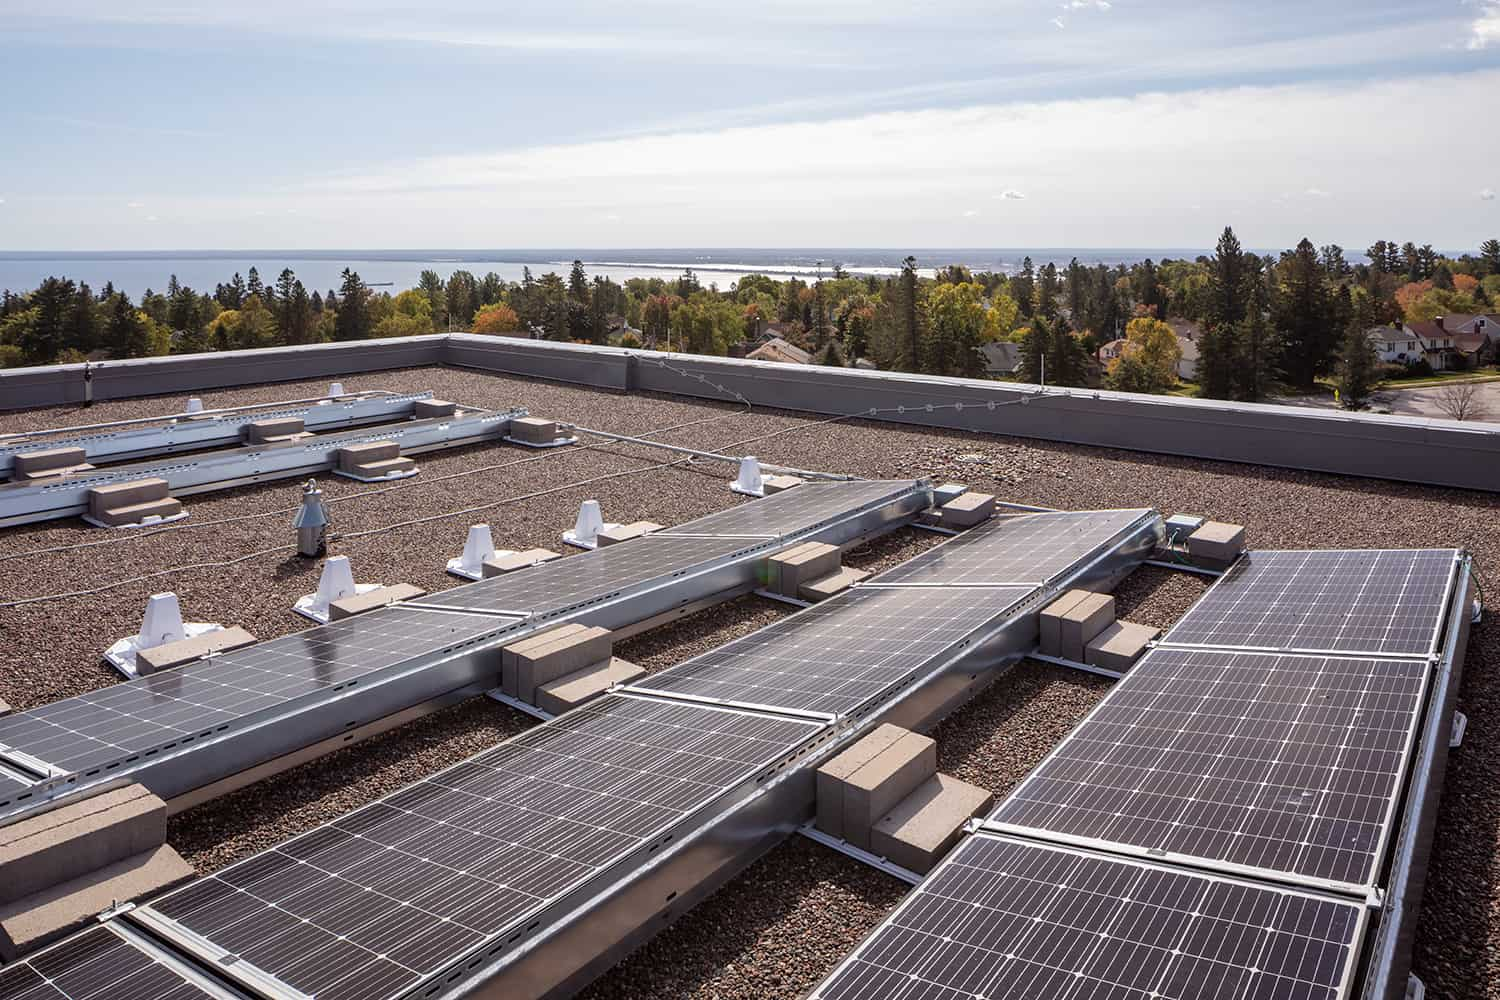 Rooftop solar panels and a view to Lake Superior.